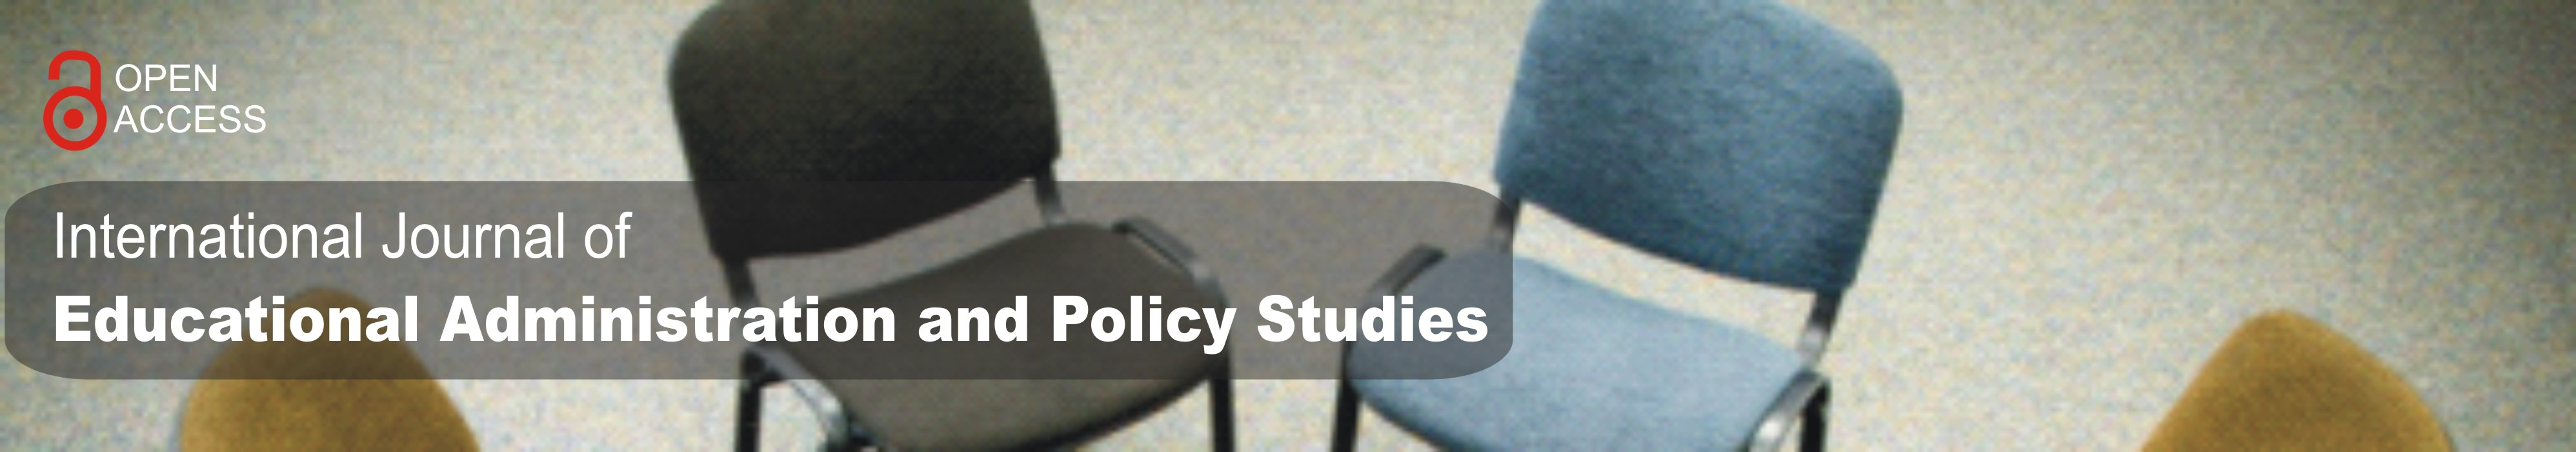 International Journal of Educational Administration and Policy Studies